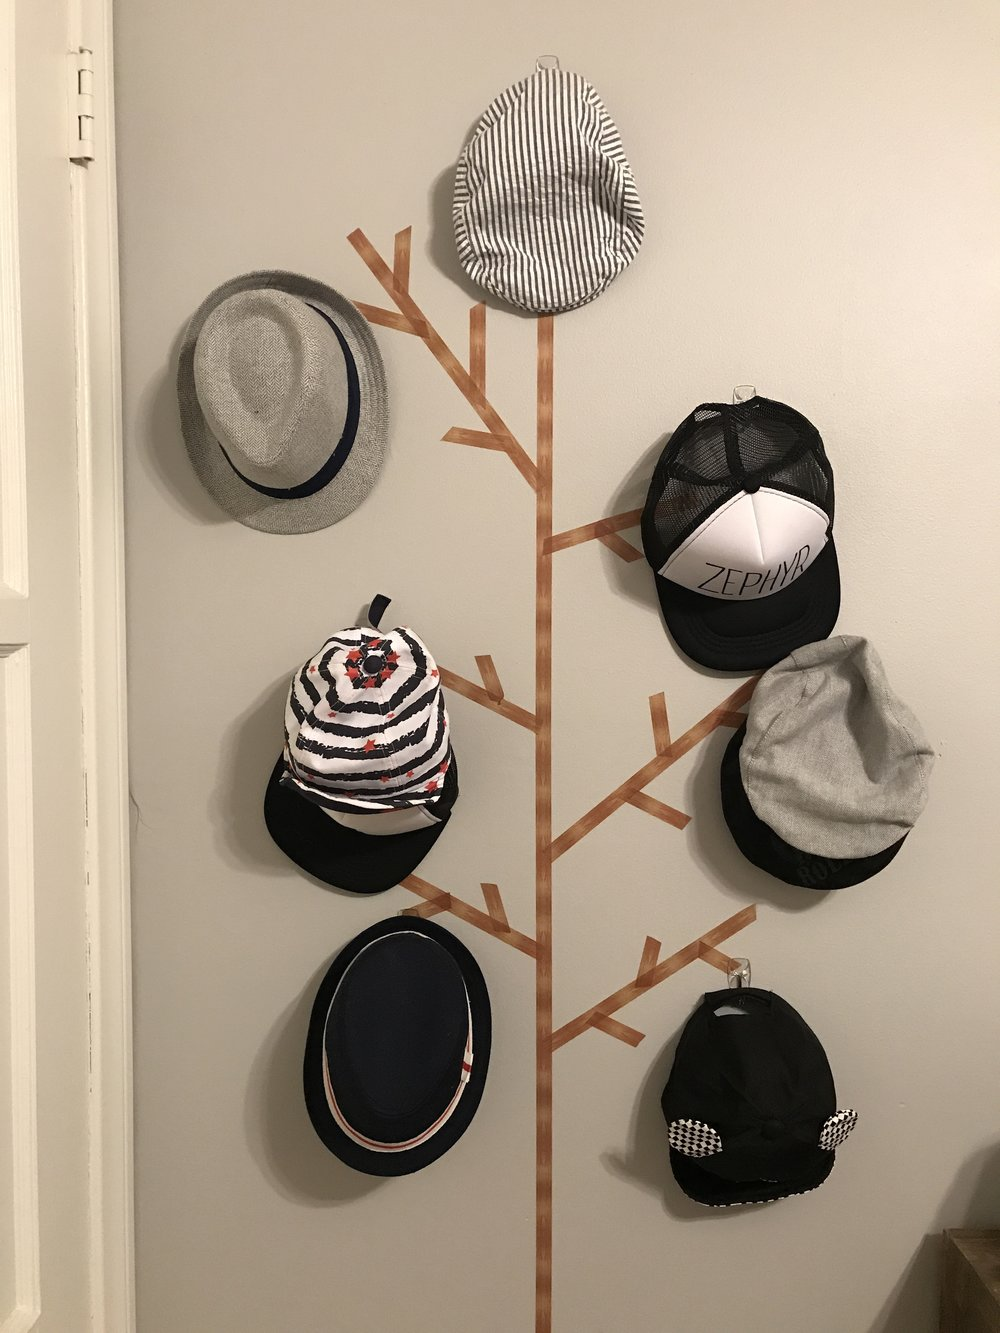 DIY Hat Rack!!! - This project only cost me $11 and took about 10 minutes to complete.